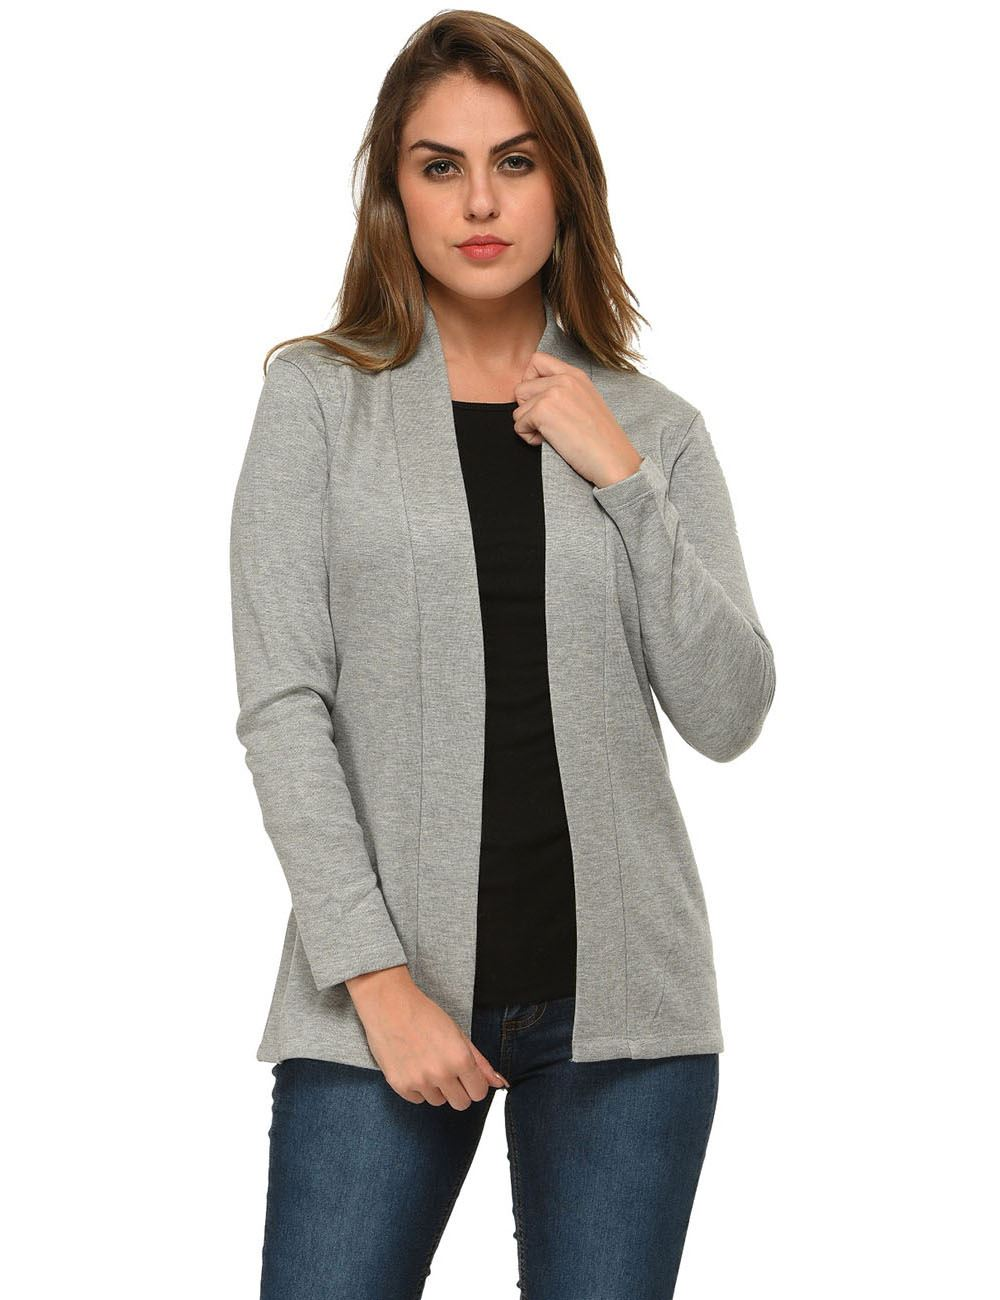 ecd8a3a35ab31 Buy Frenchtrendz Viscose Cotton Fleece Light Grey Winter Shrugs ...